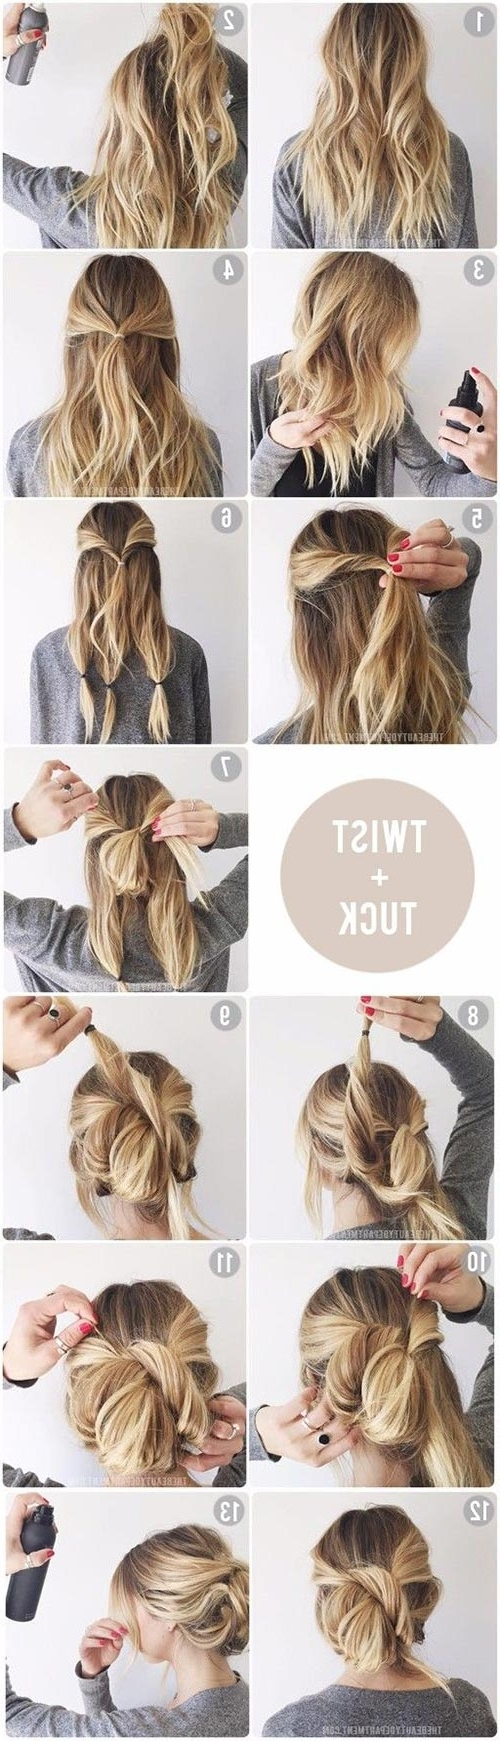 Top 10 Messy Updo Tutorials For Different Hair Lengths Pertaining To Easy To Do Updo Hairstyles For Long Hair (View 13 of 15)